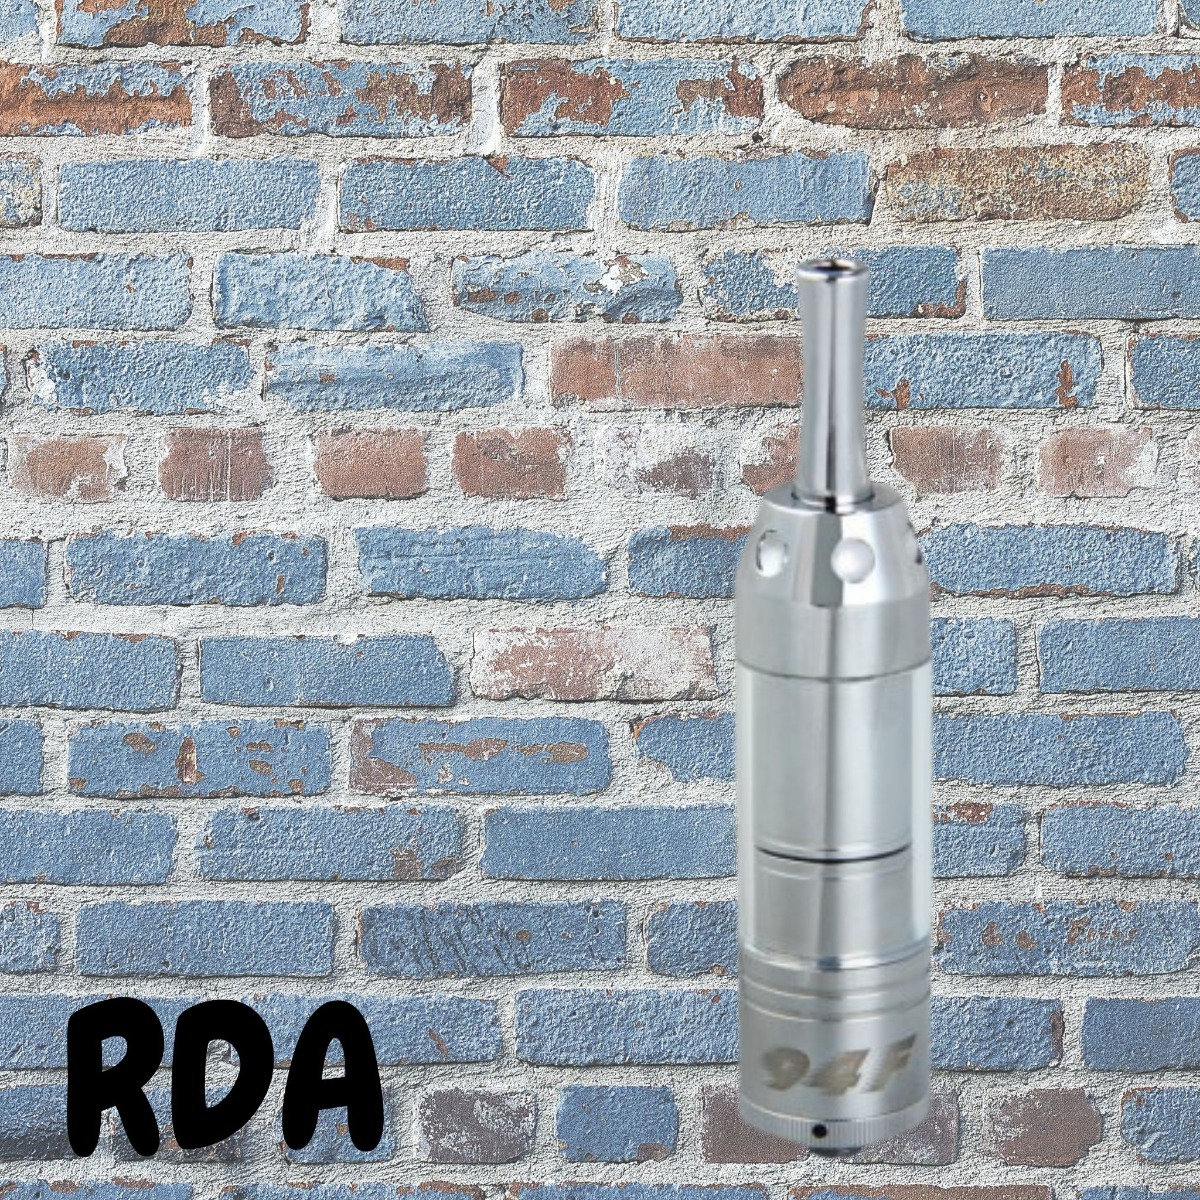 RDA atomizer in front of a brick wall